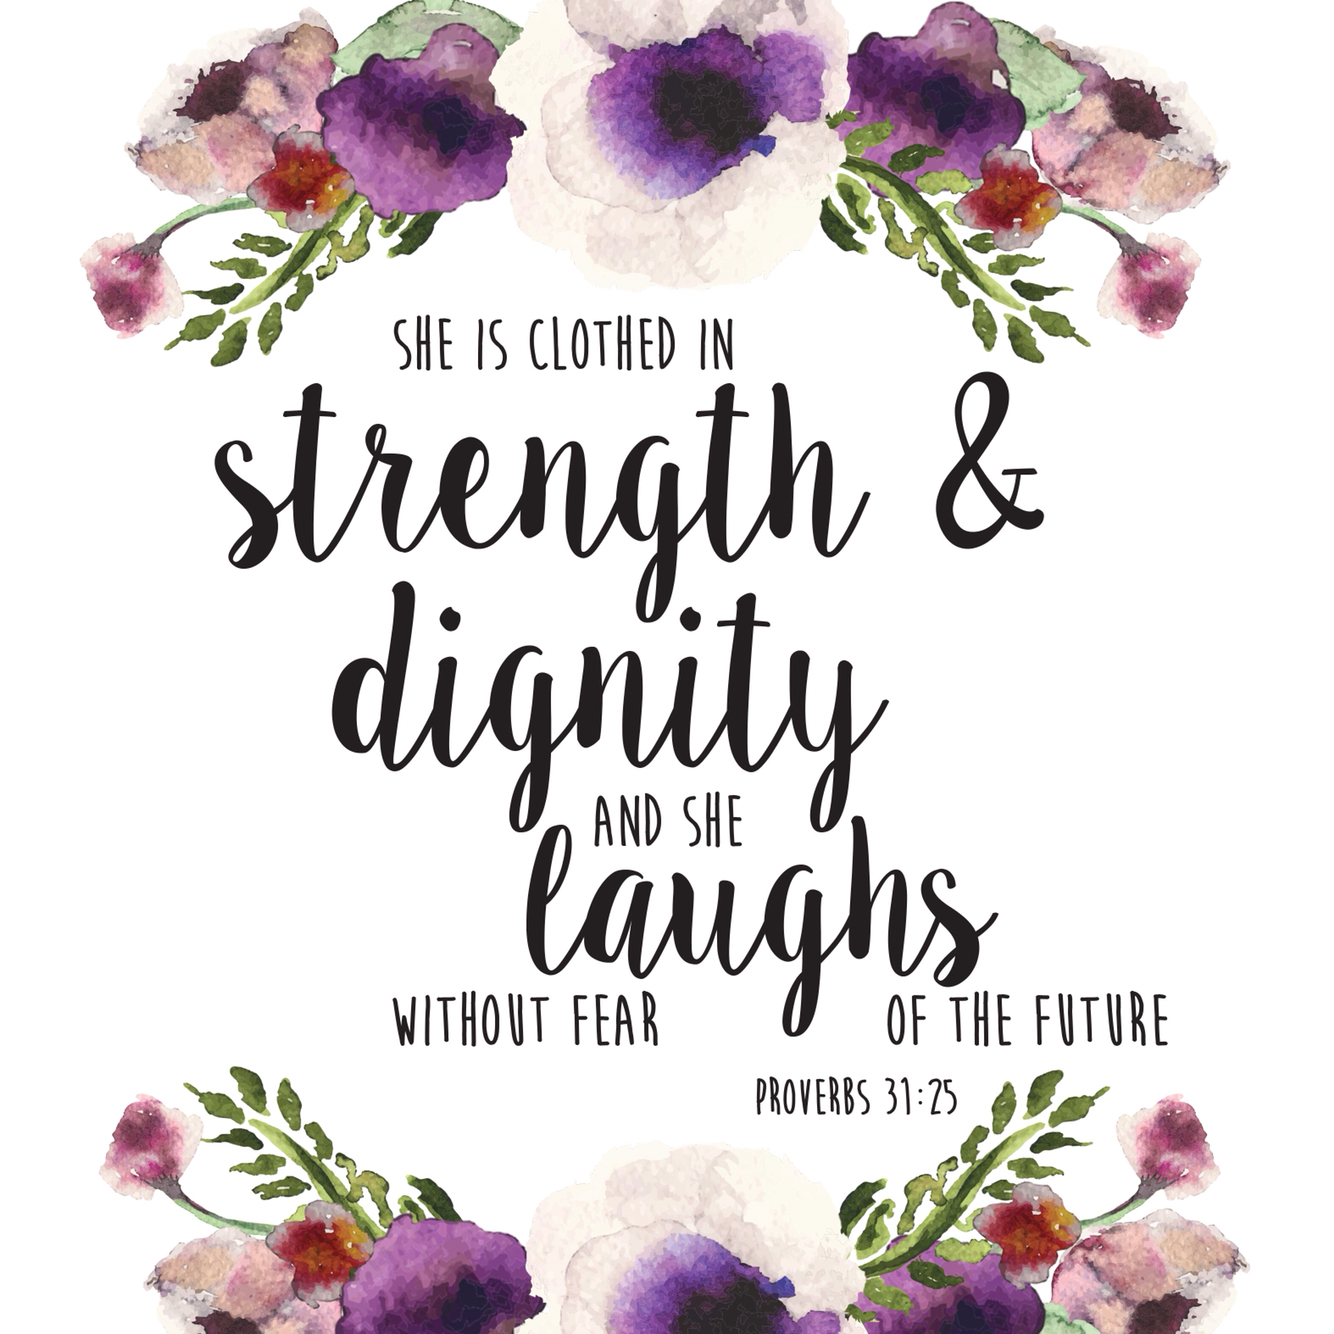 Proverbs 31:25 wall art Clothed in strength and dignity, laughs without fear of future